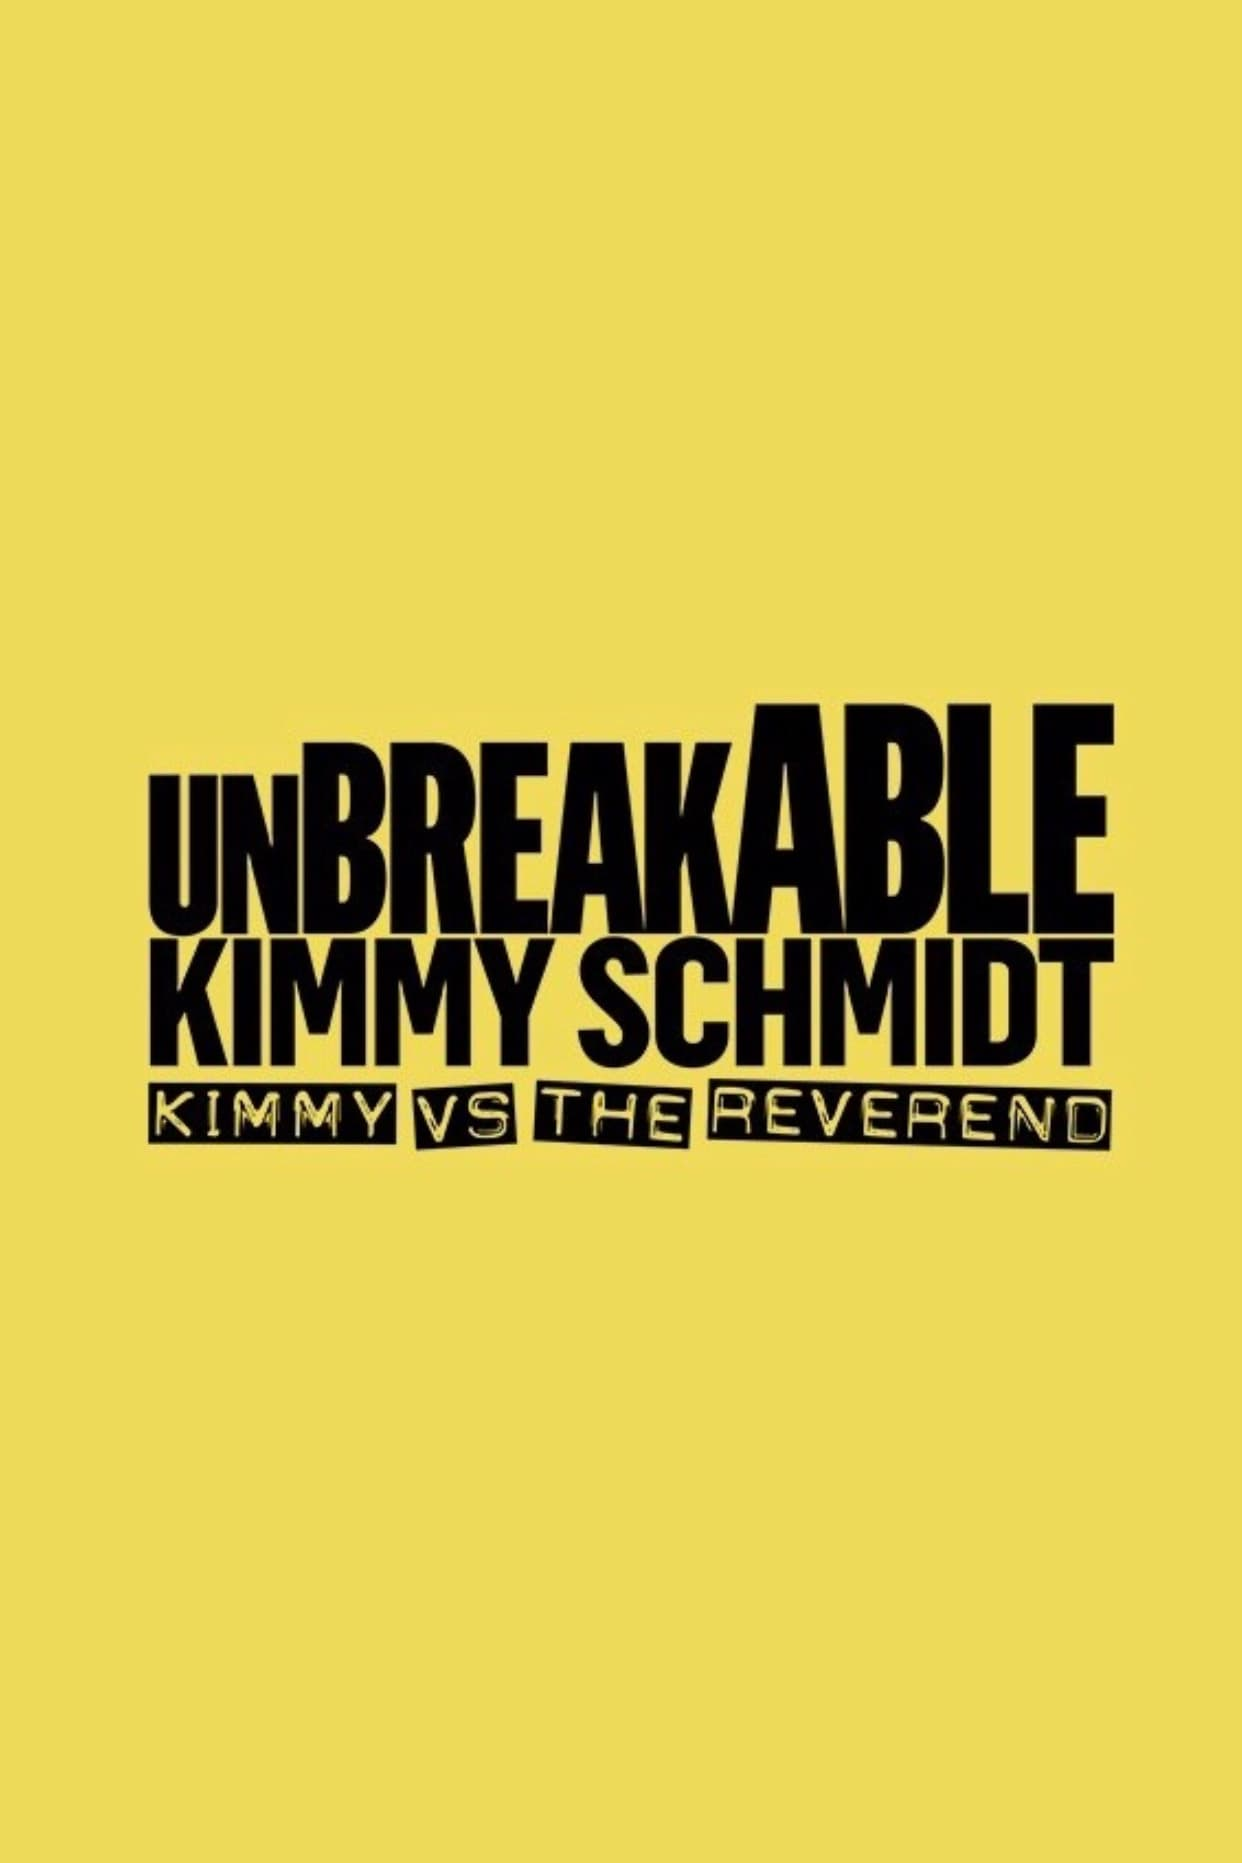 Unbreakable Kimmy Schmidt: Kimmy vs the Reverend